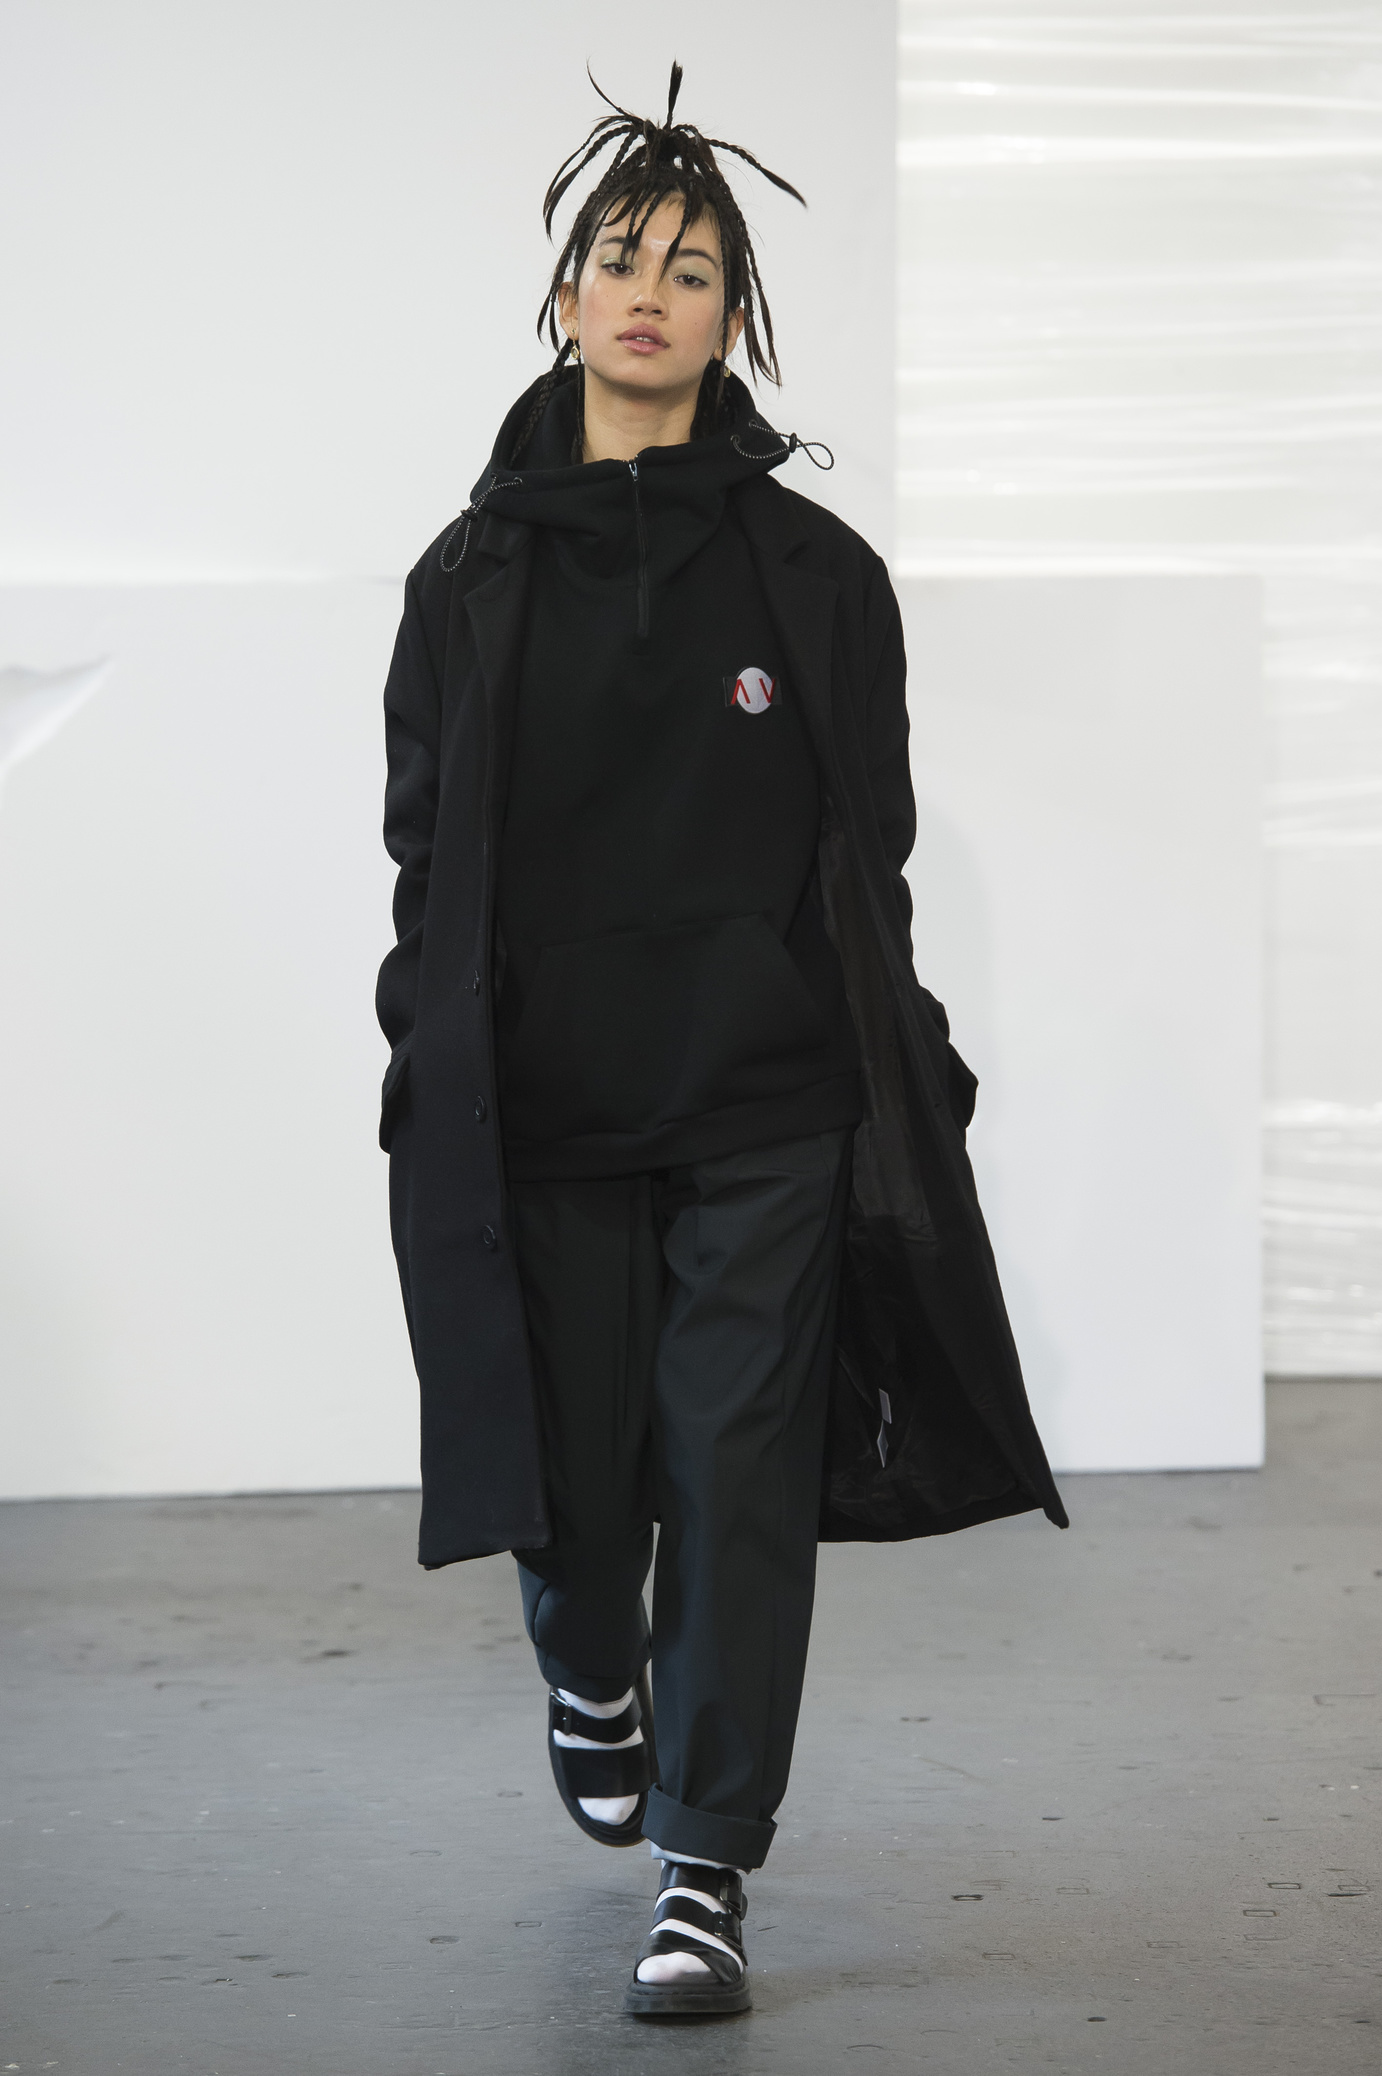 streetwear-politique-Avoc Kiliwatch gender fluid gender neutral no gender fashion week homme femme